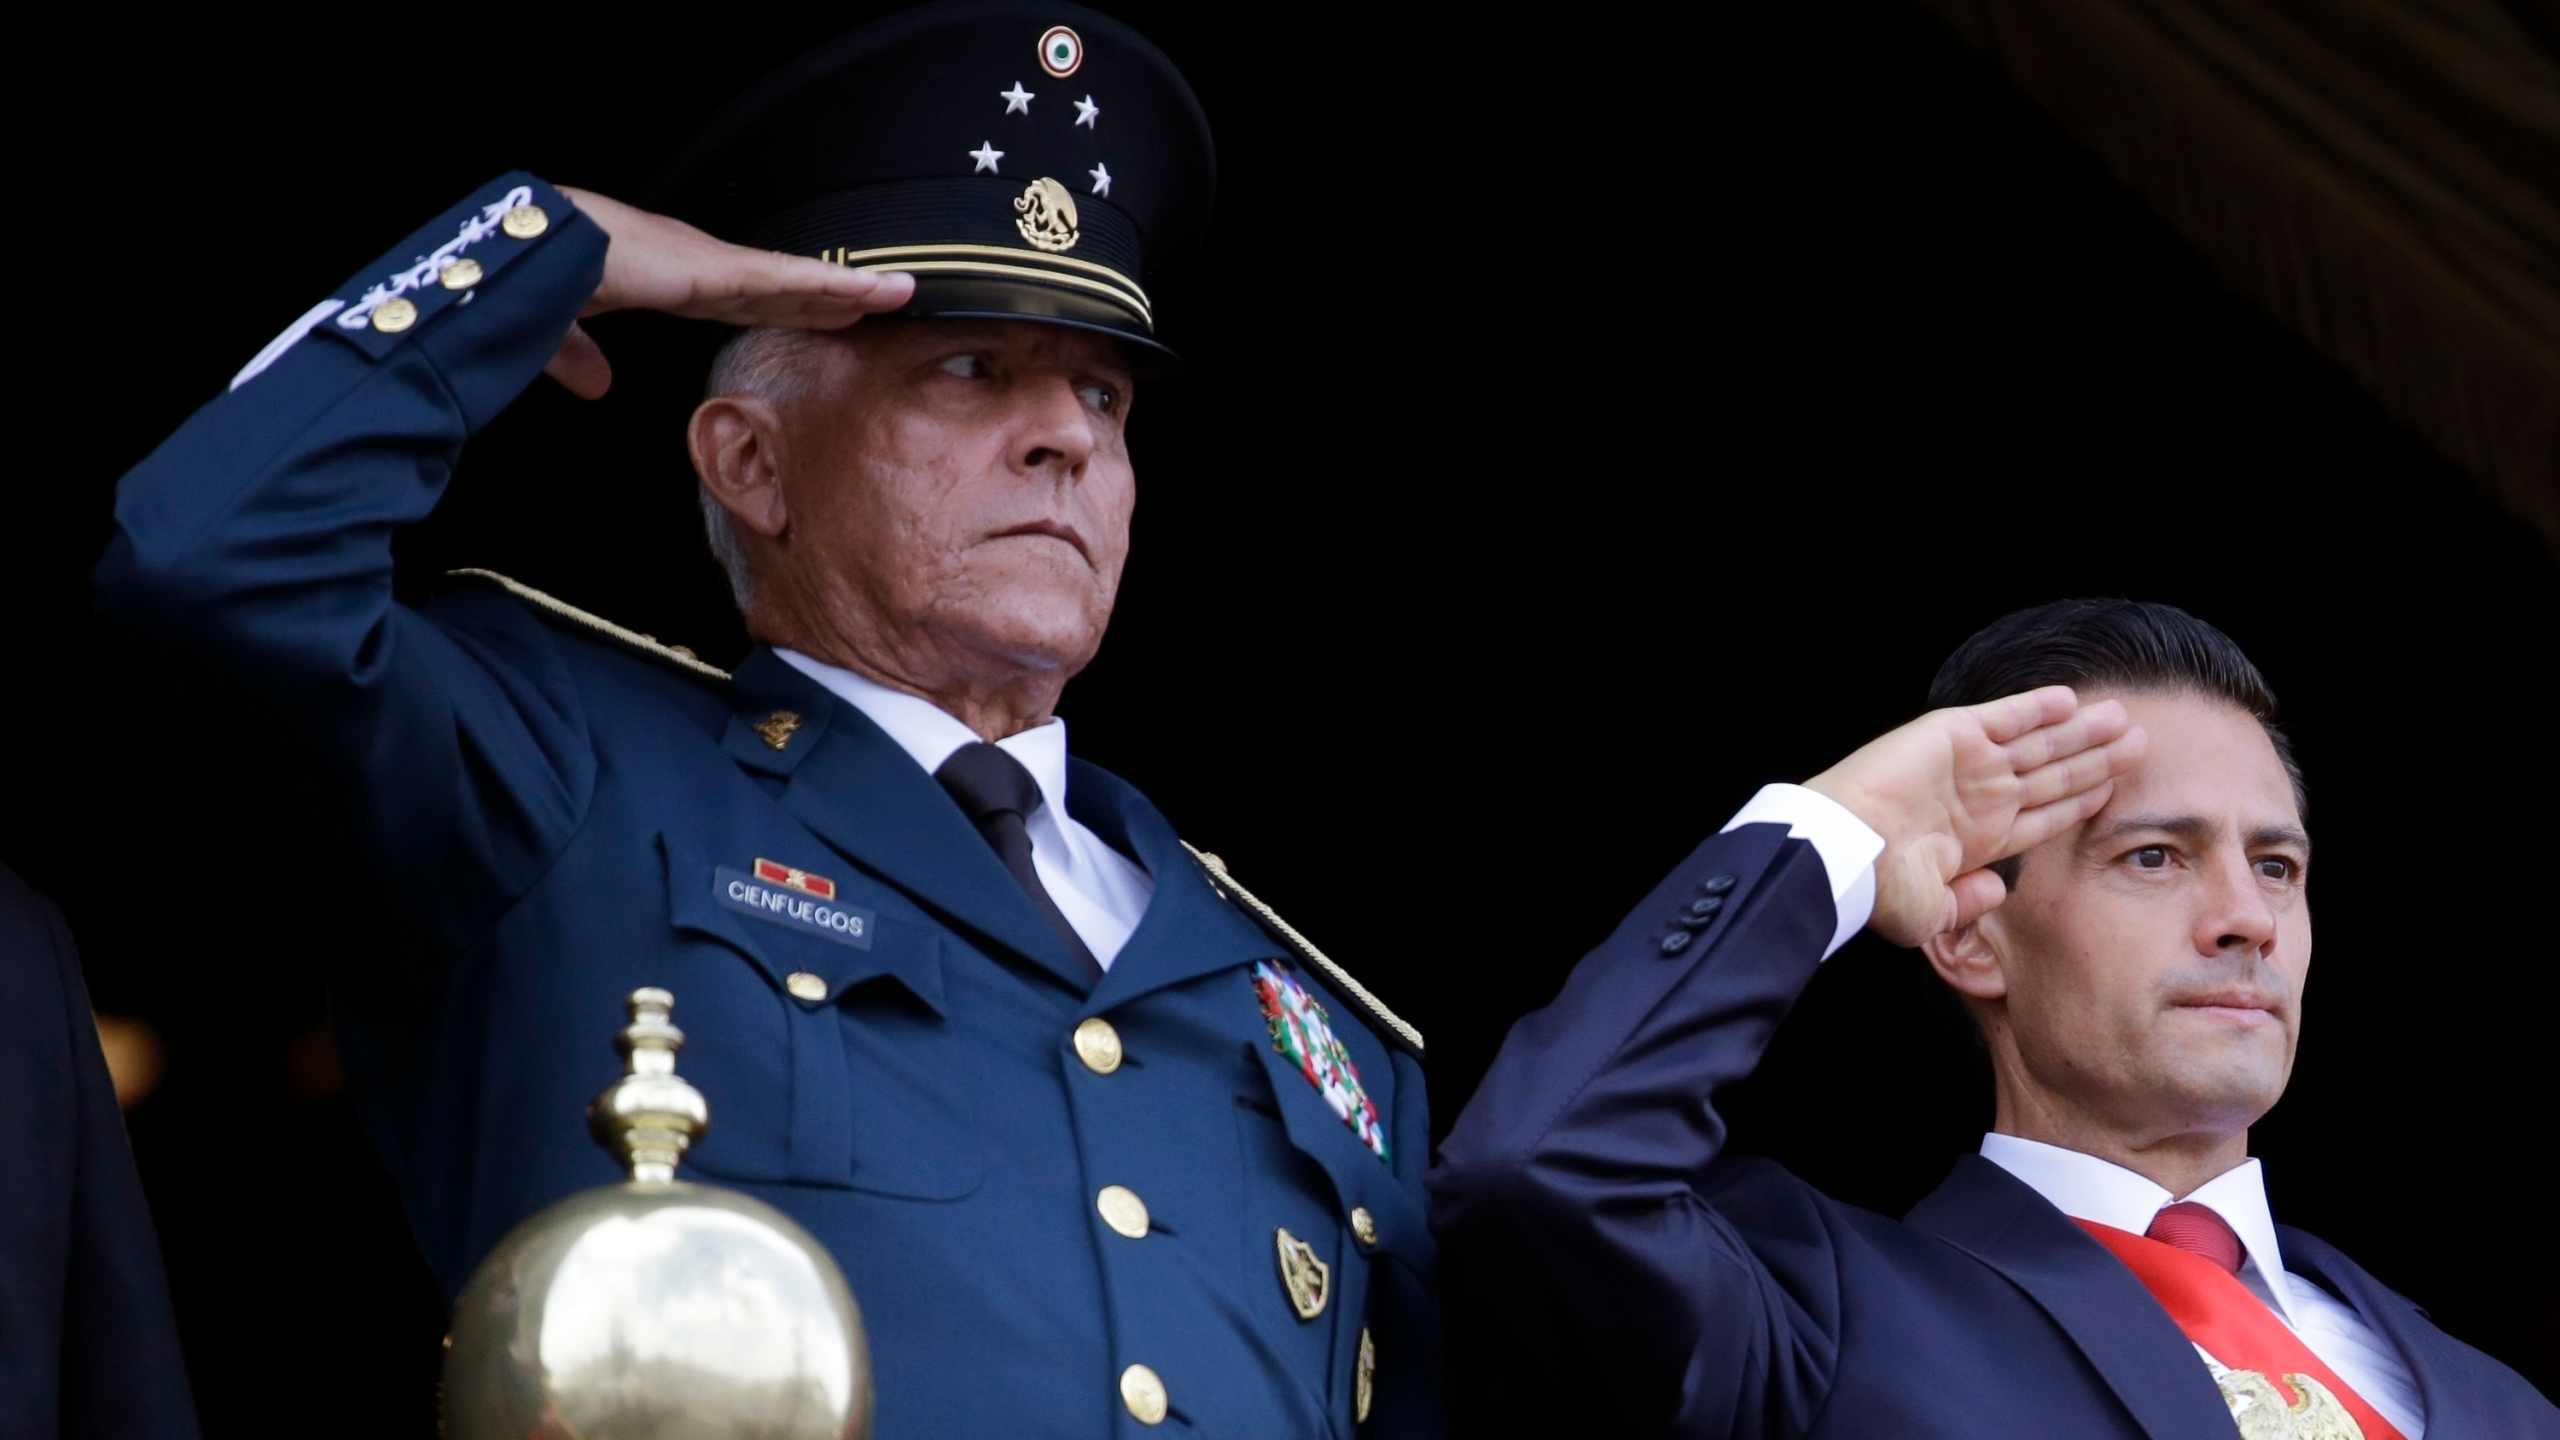 In this Sept. 16, 2016, file photo, Defense Secretary Gen. Salvador Cienfuegos, left, and Mexico's President Enrique Pena Nieto, salute during the annual Independence Day military parade in Mexico City's main square. (Rebecca Blackwell / Associated Press)